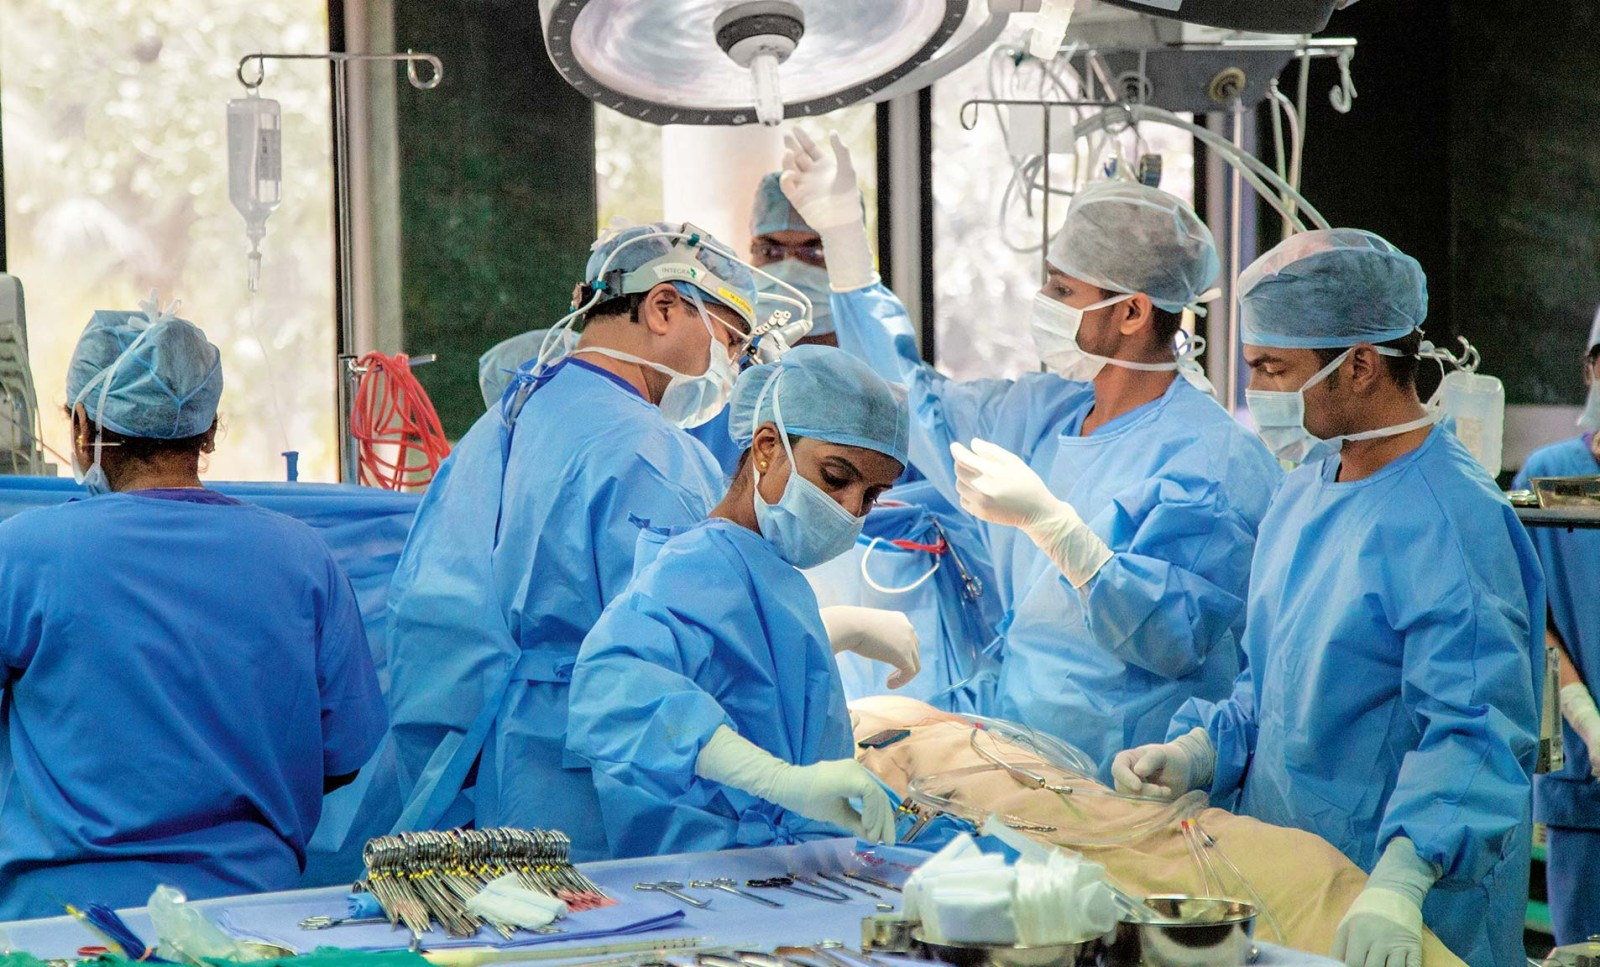 Smart Surgery And Low Cost Health Care In India Roland Berger